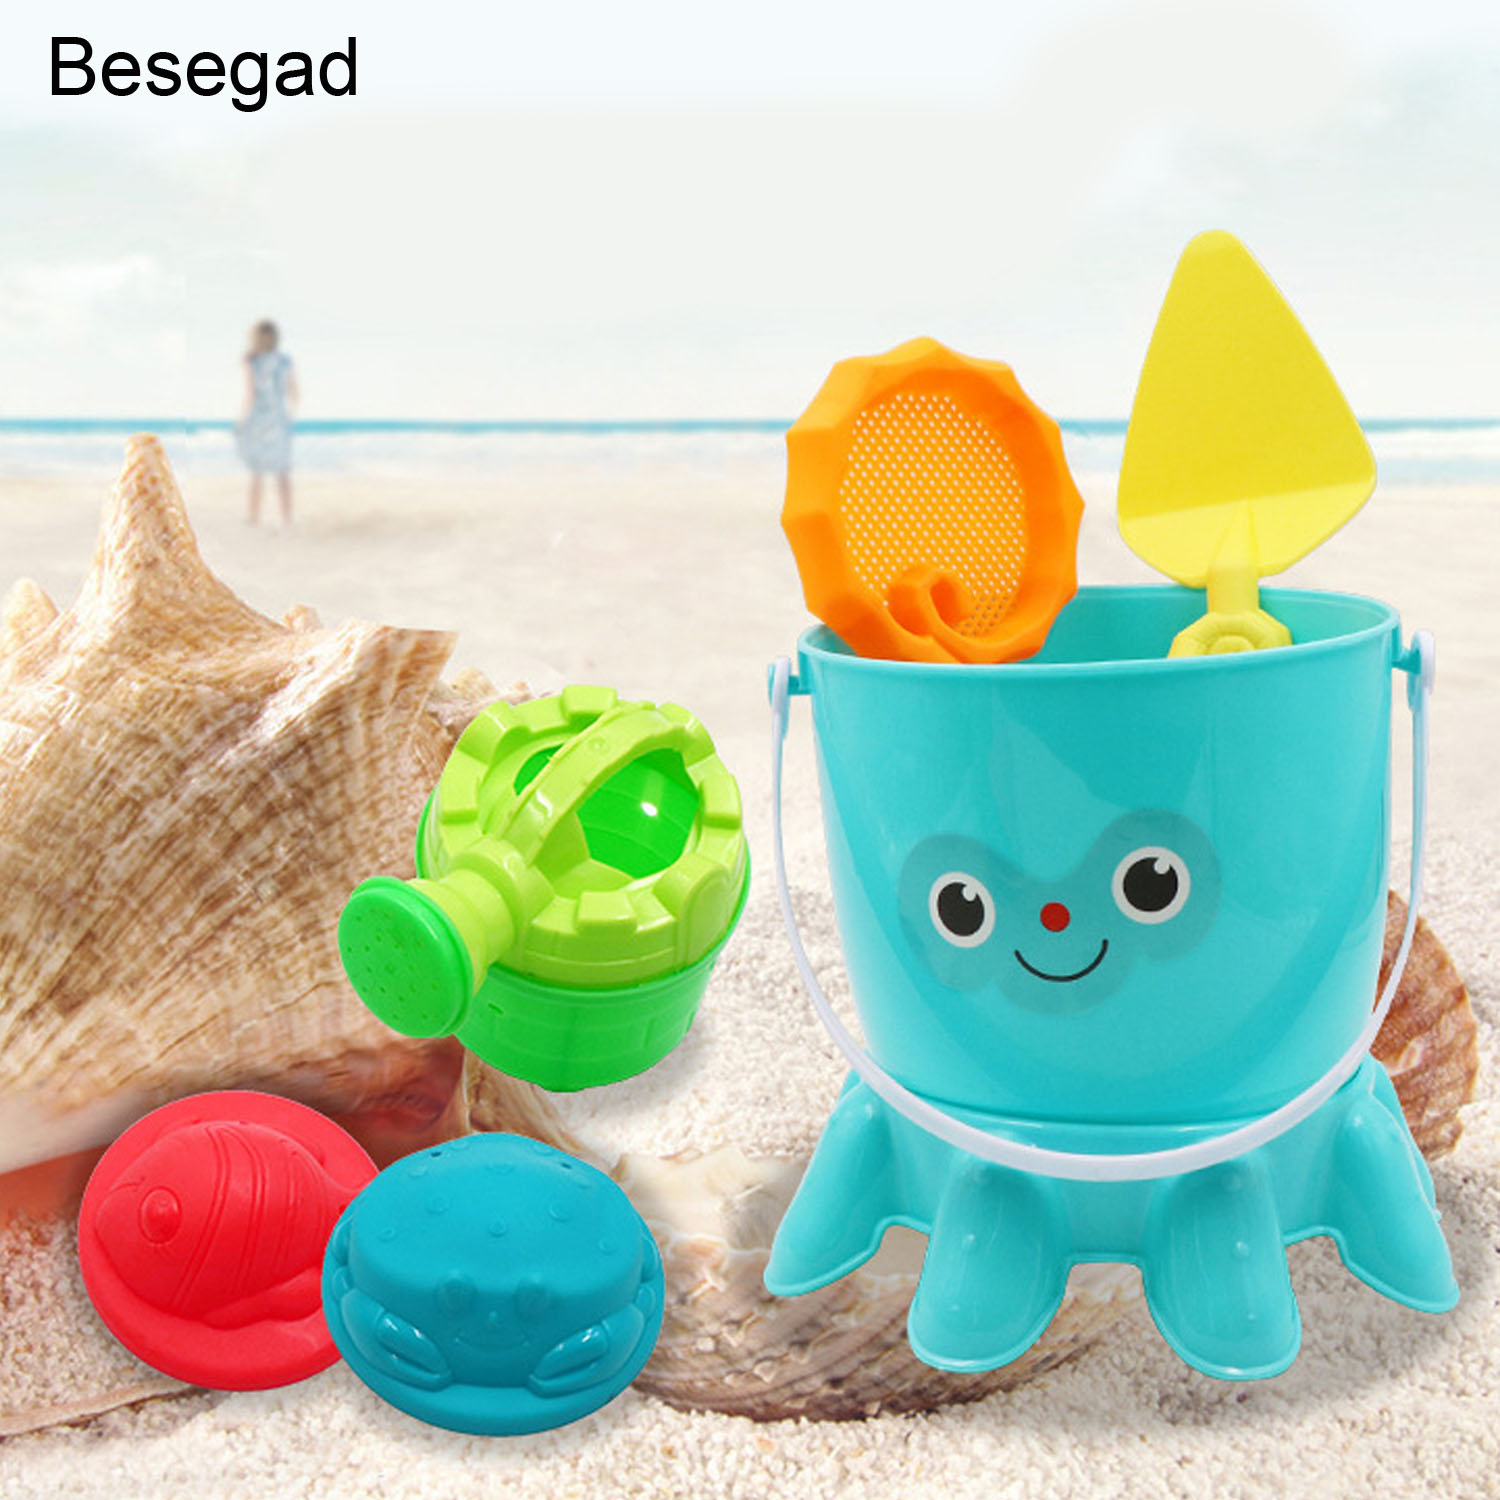 Besegad 6pcs Funny Beach Sand Game Toys Kit Kids Pretend Role Play Toy Playset Including Shovels Bucket Watering Pot Sand Model